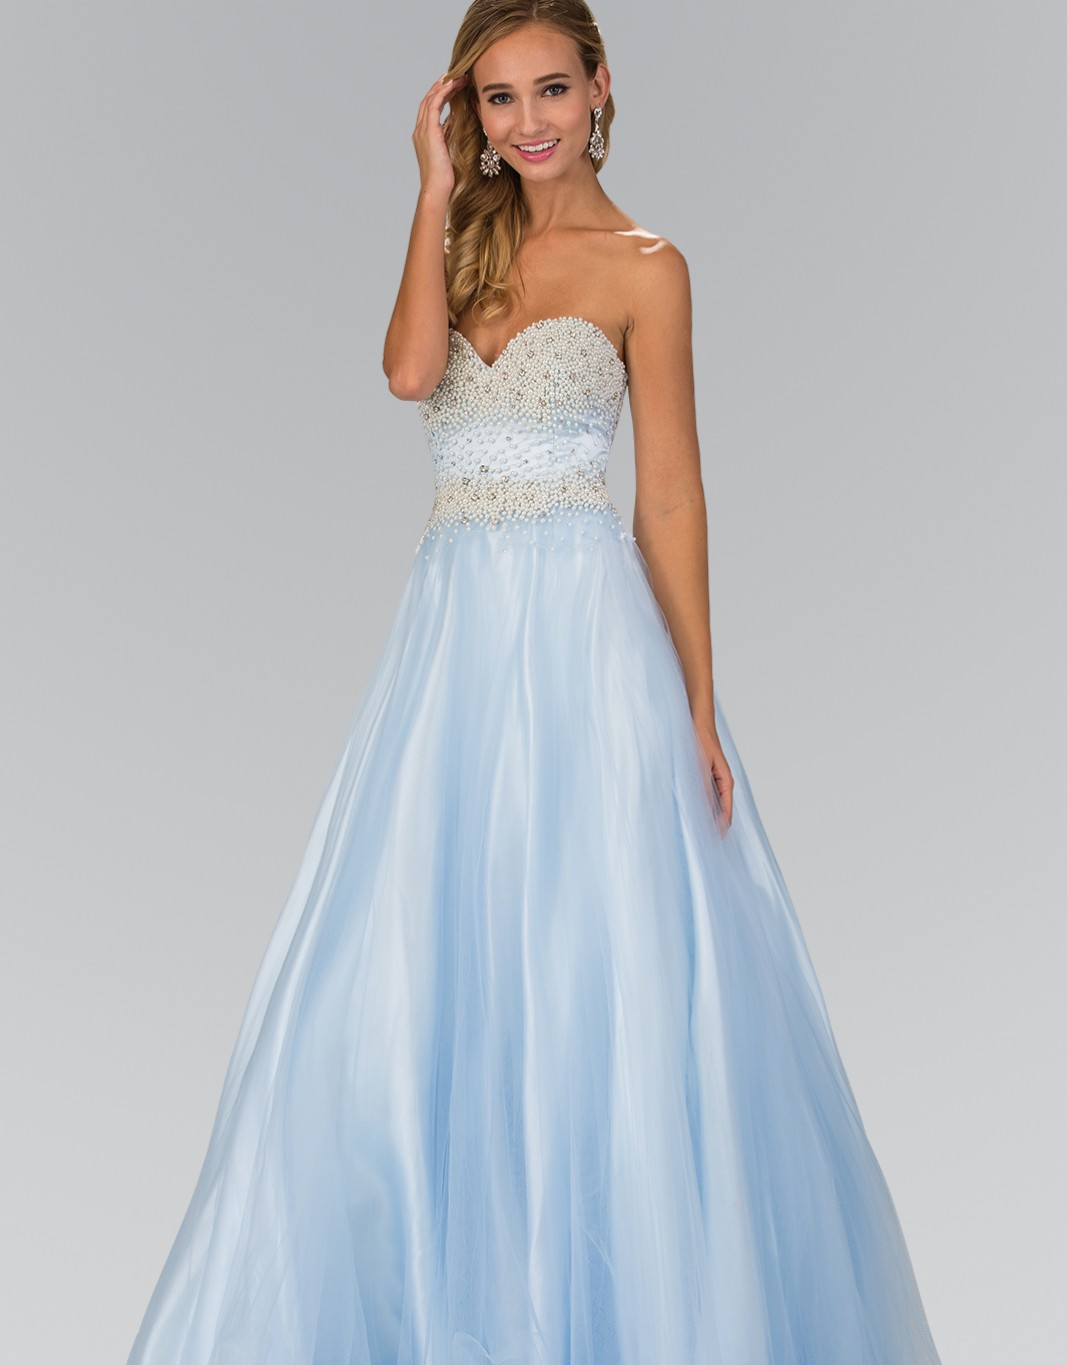 Strapless Sweetheart A-Line Tulle Long Dress with Bead and Pearl Embellished Bodice